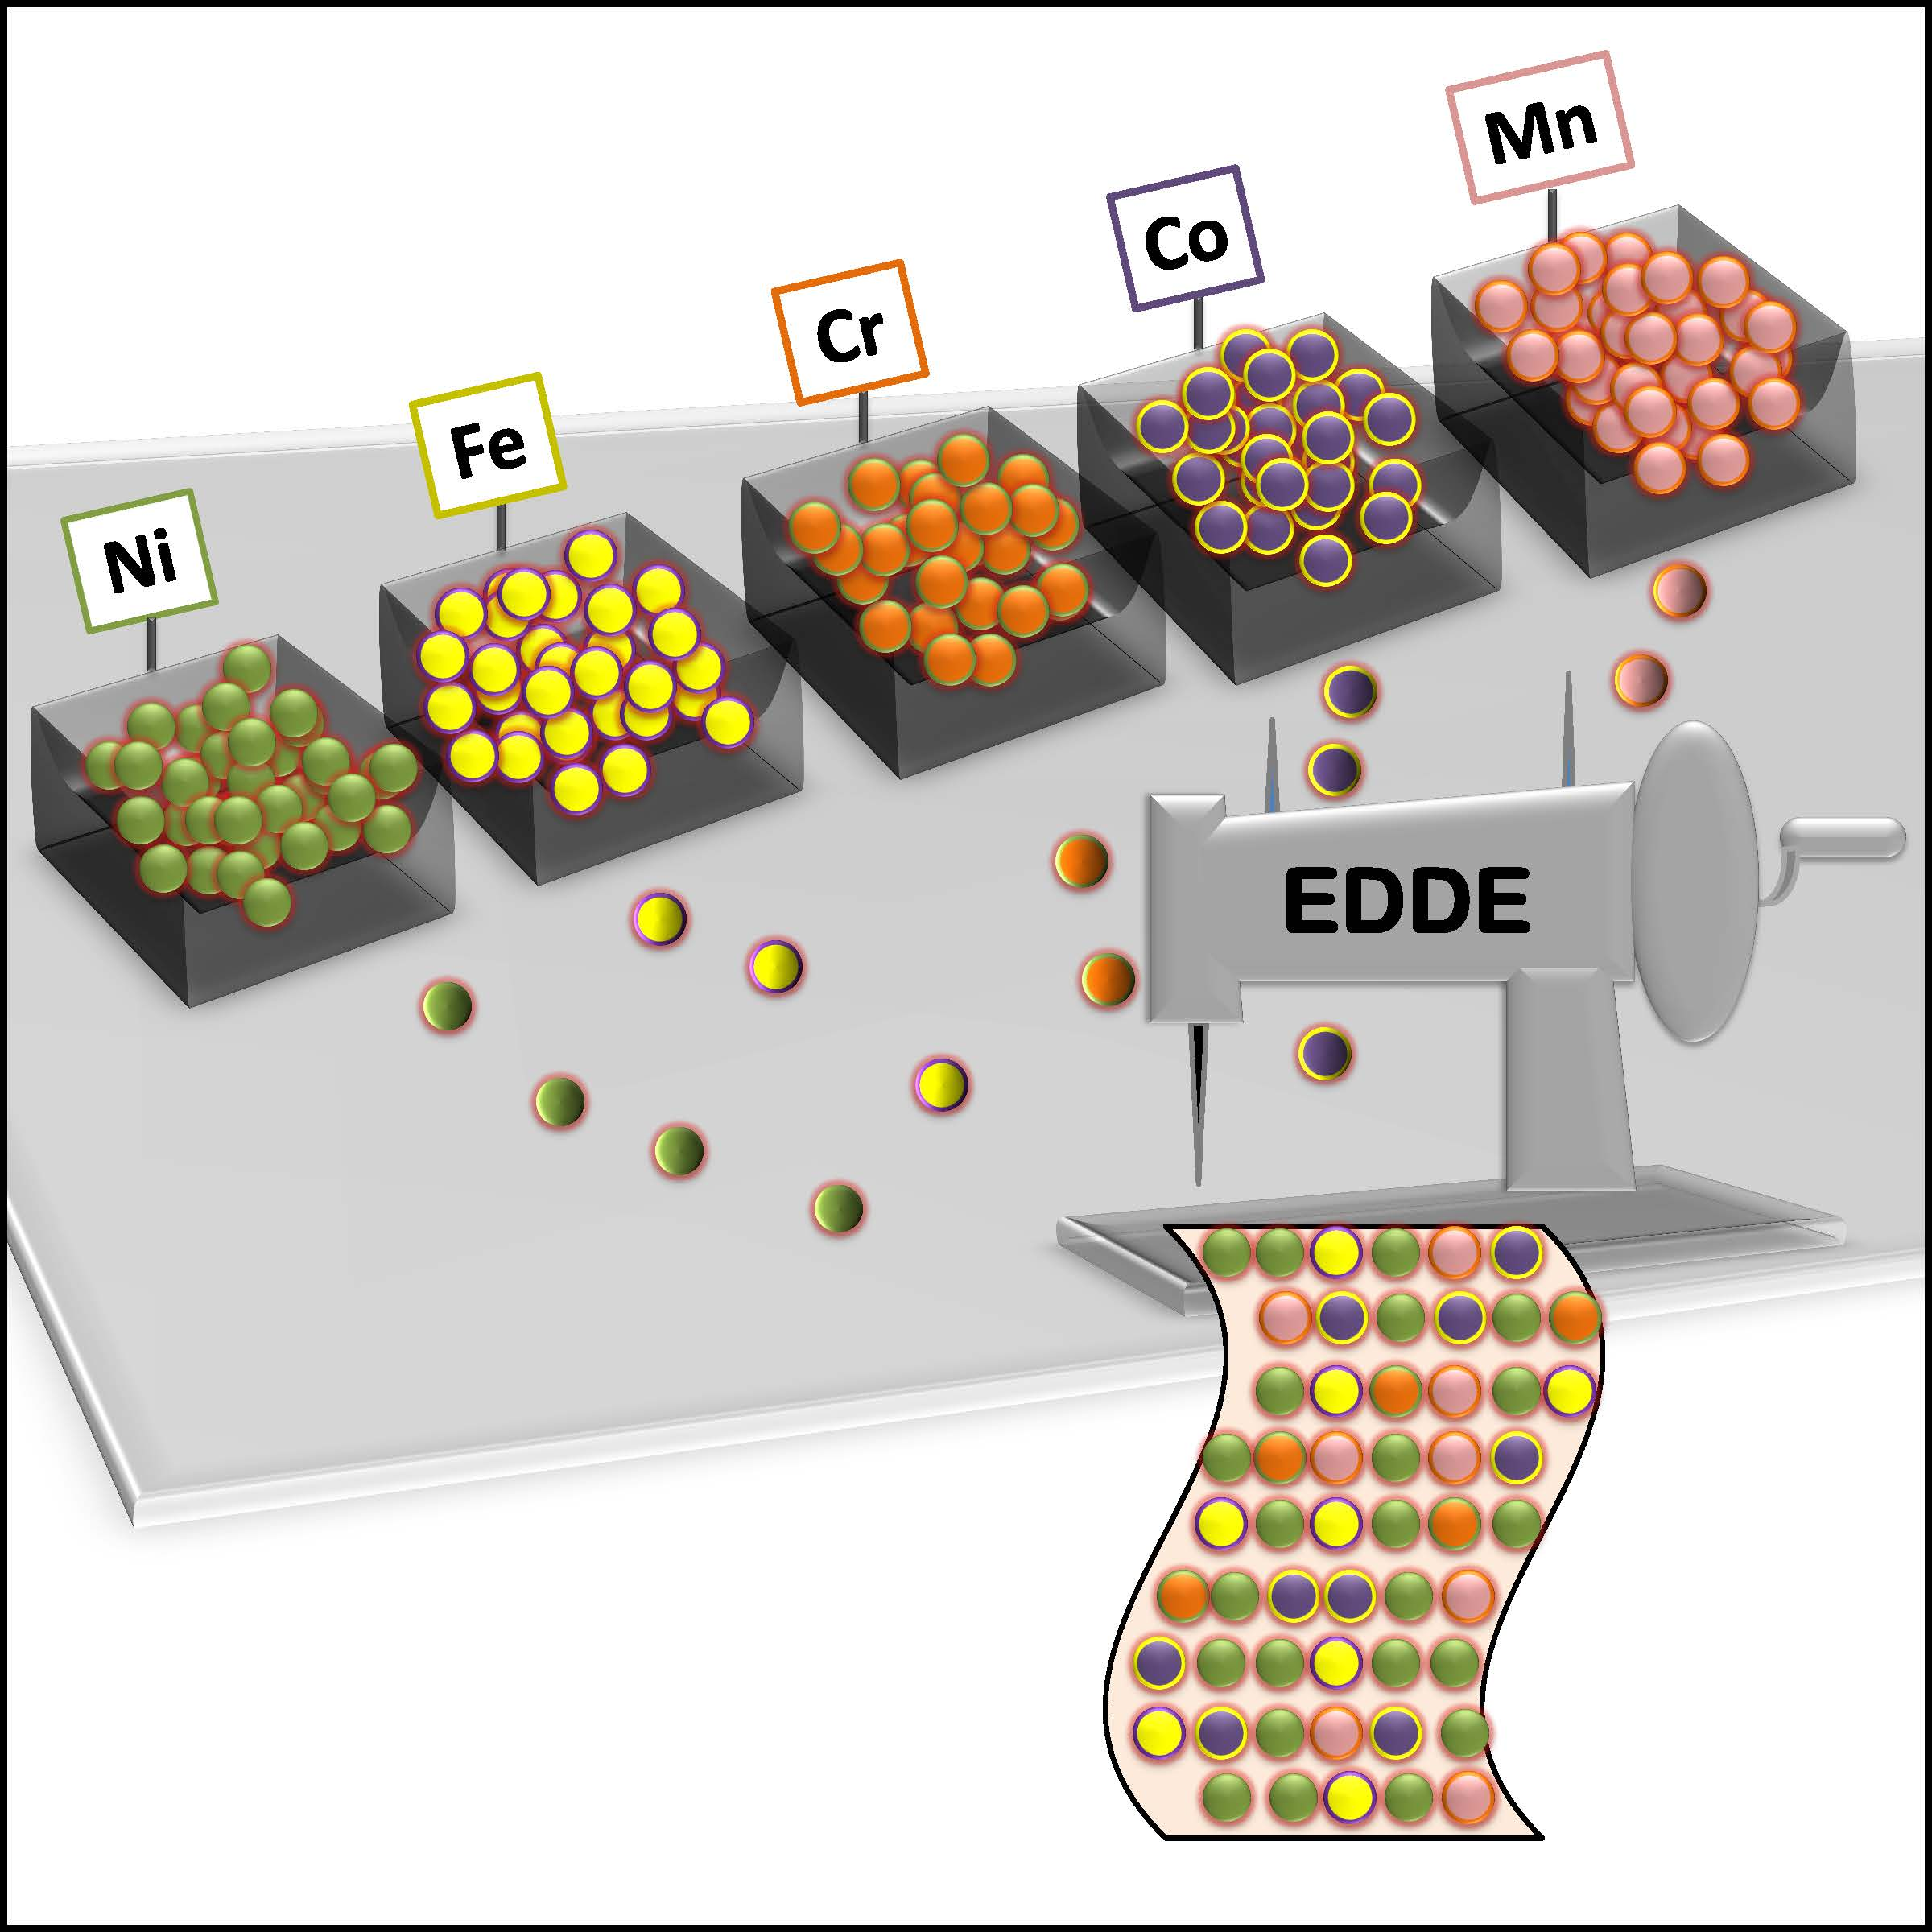 Tailoring Alloys to be Radiation-tolerant for Clean and Safe Energy Production